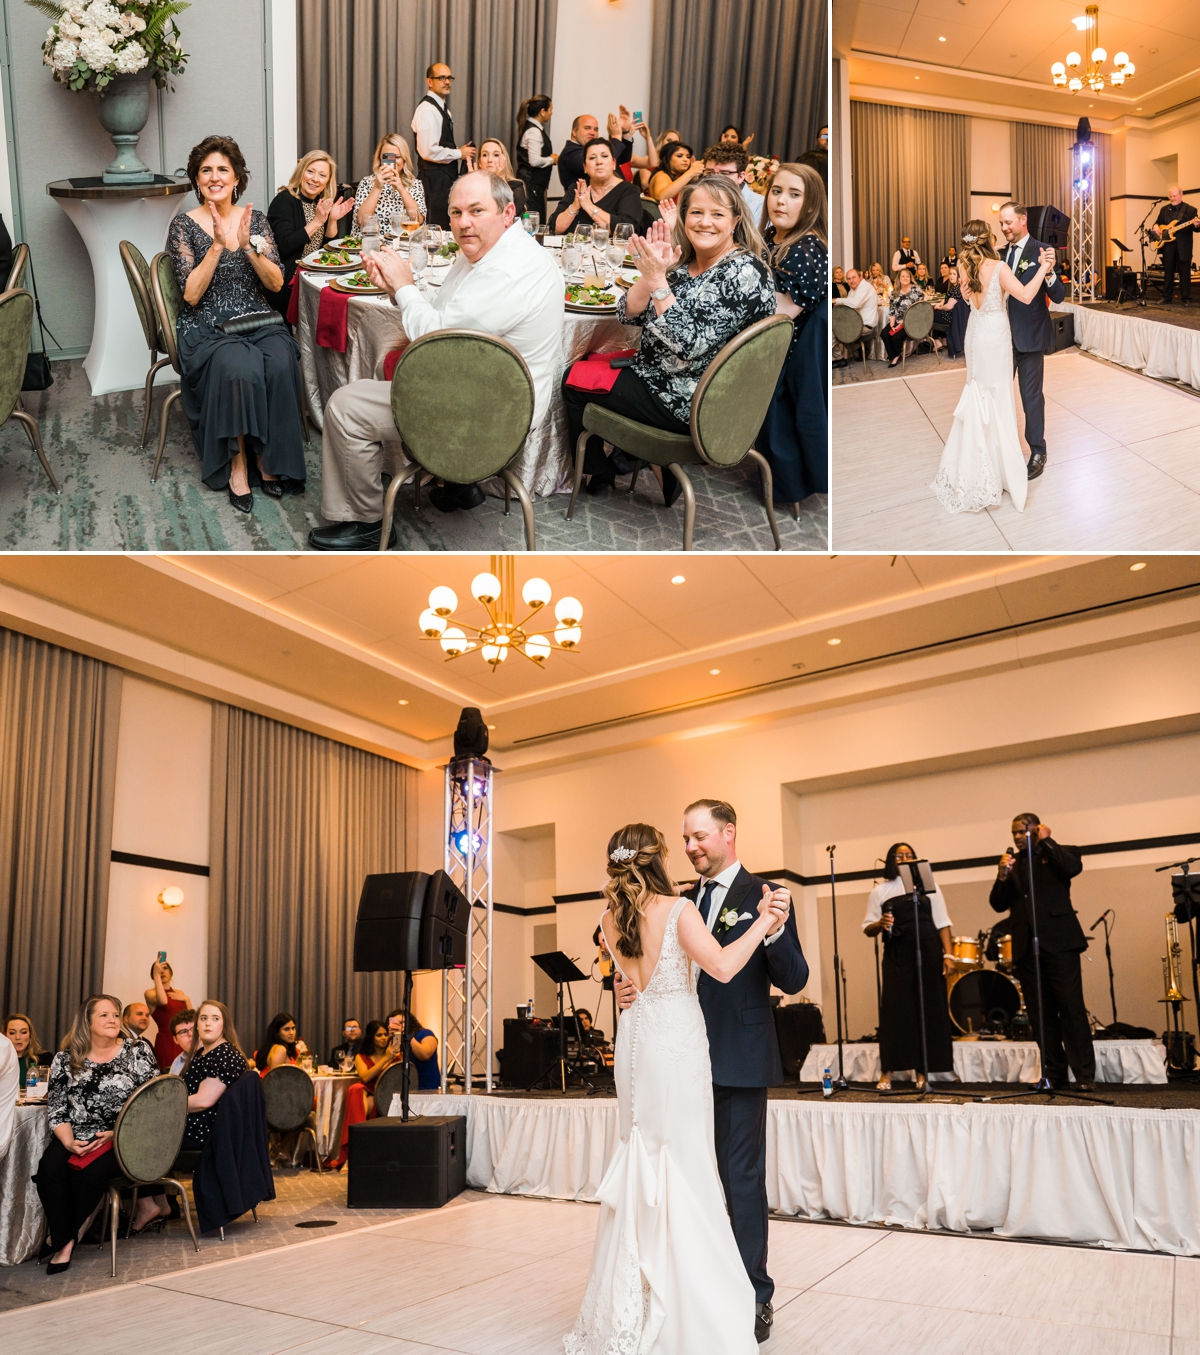 Bride and Groom entrance and First Dance at Houston Hotel Wedding